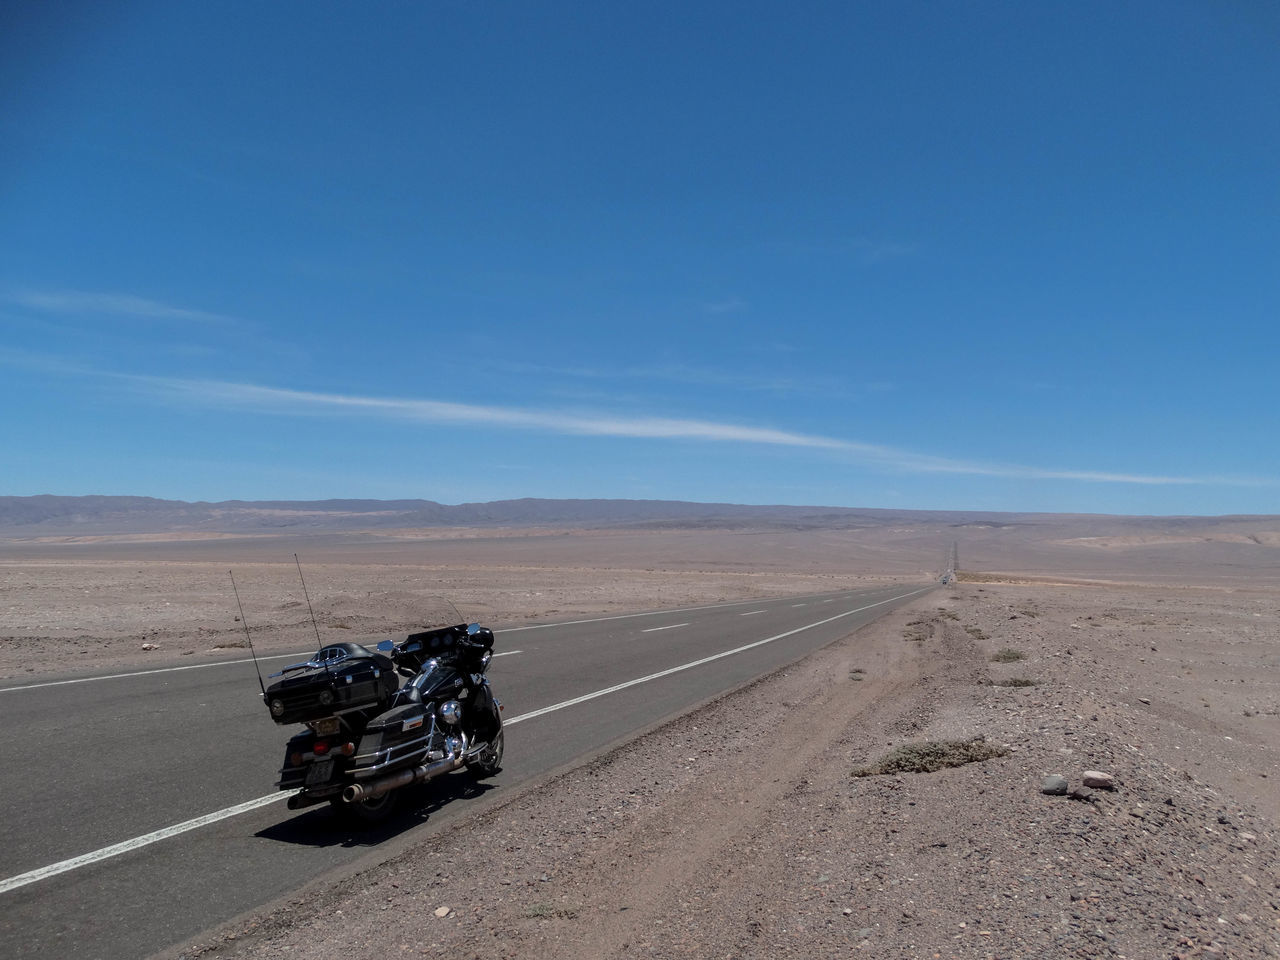 Desert Sky Clear Sky Sand Outdoors No People Tire Track Landscape Sand Dune Day Arid Climate Motorsport Sports Track Harley Davidson Harleydavidson Winding Road South America Wild Born To Be Wild Wildlife & Nature Roadtrip EyeEmNewHere